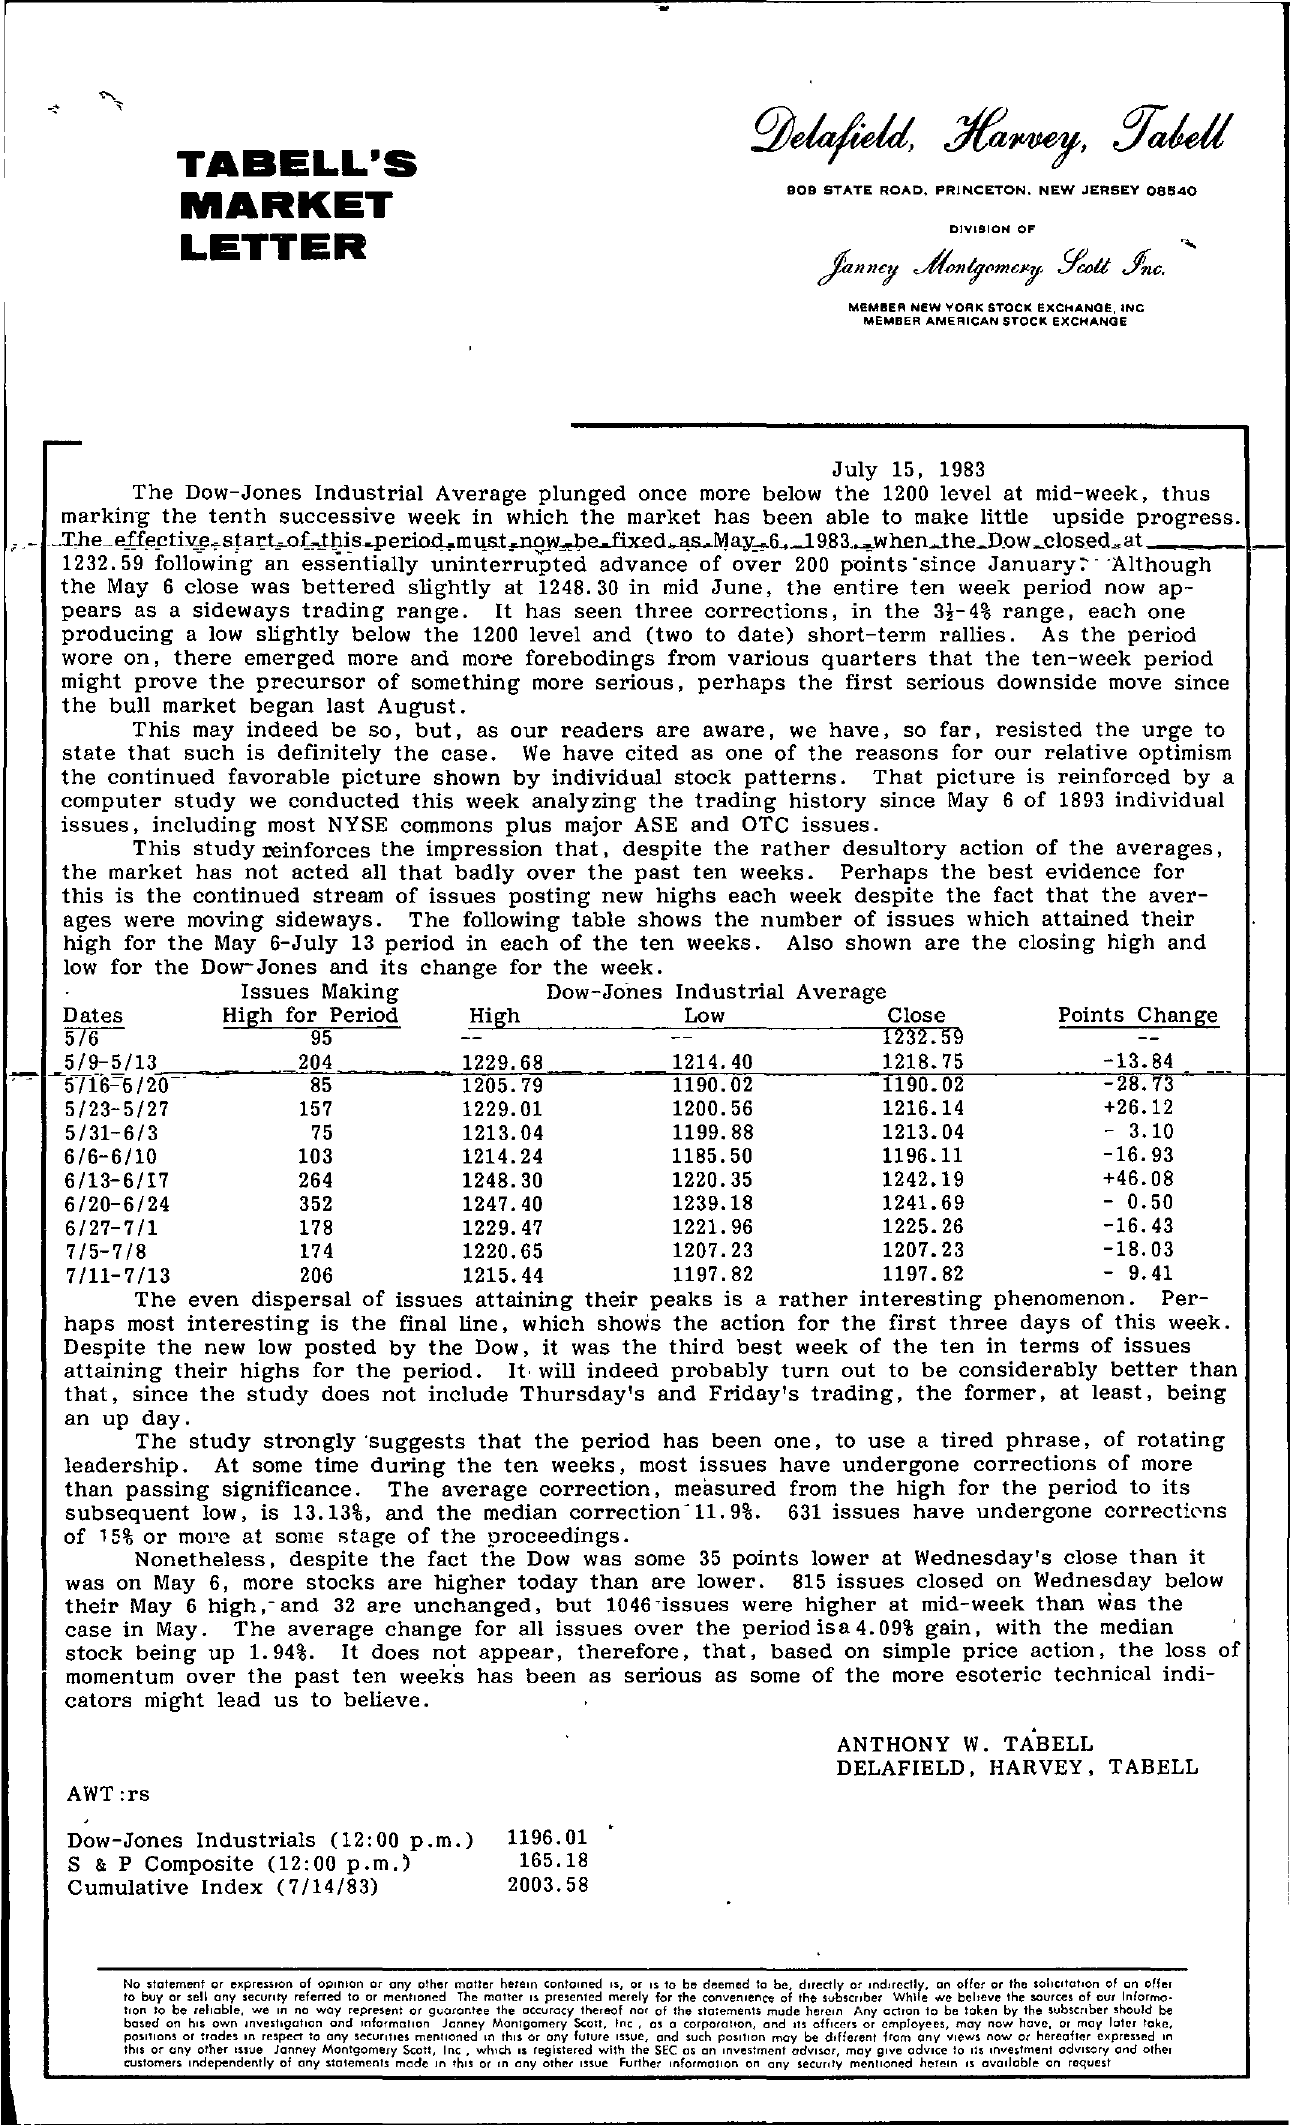 Tabell's Market Letter - July 15, 1983